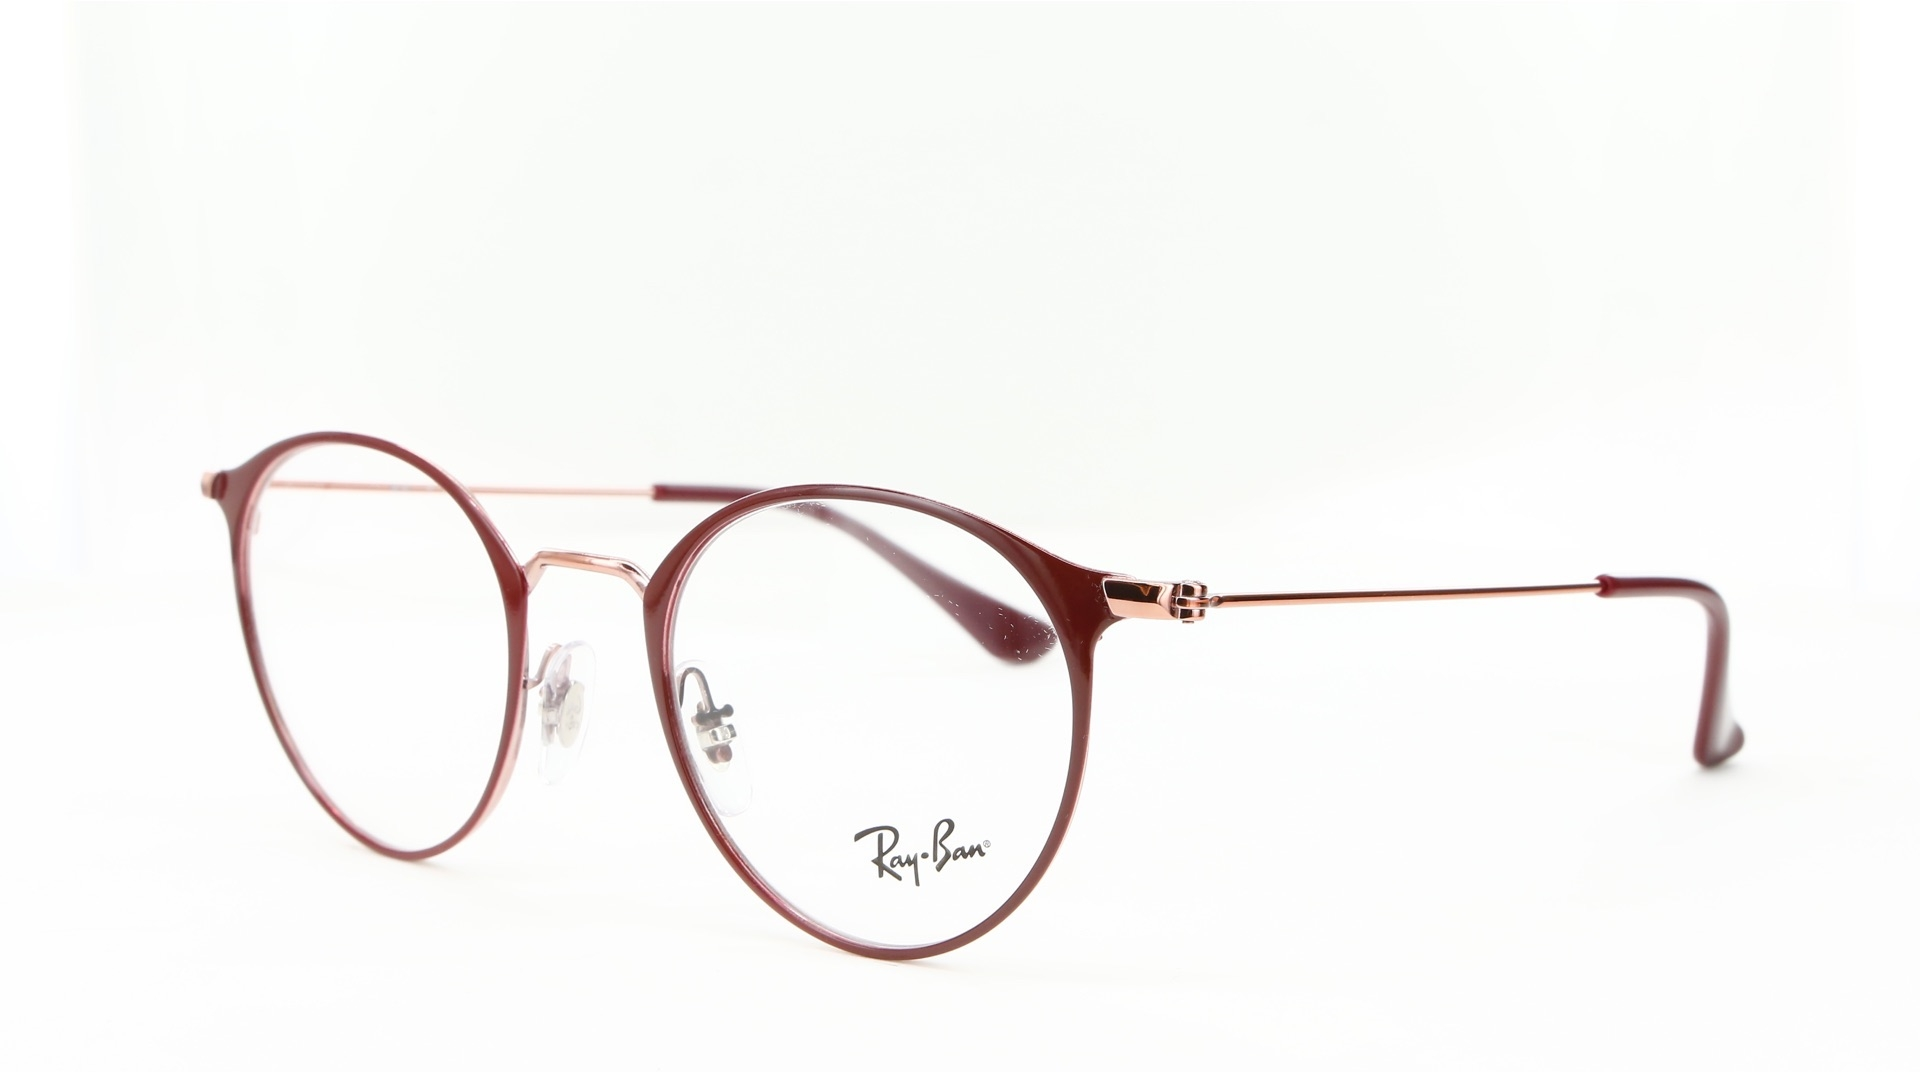 Ray-Ban - ref: 82424